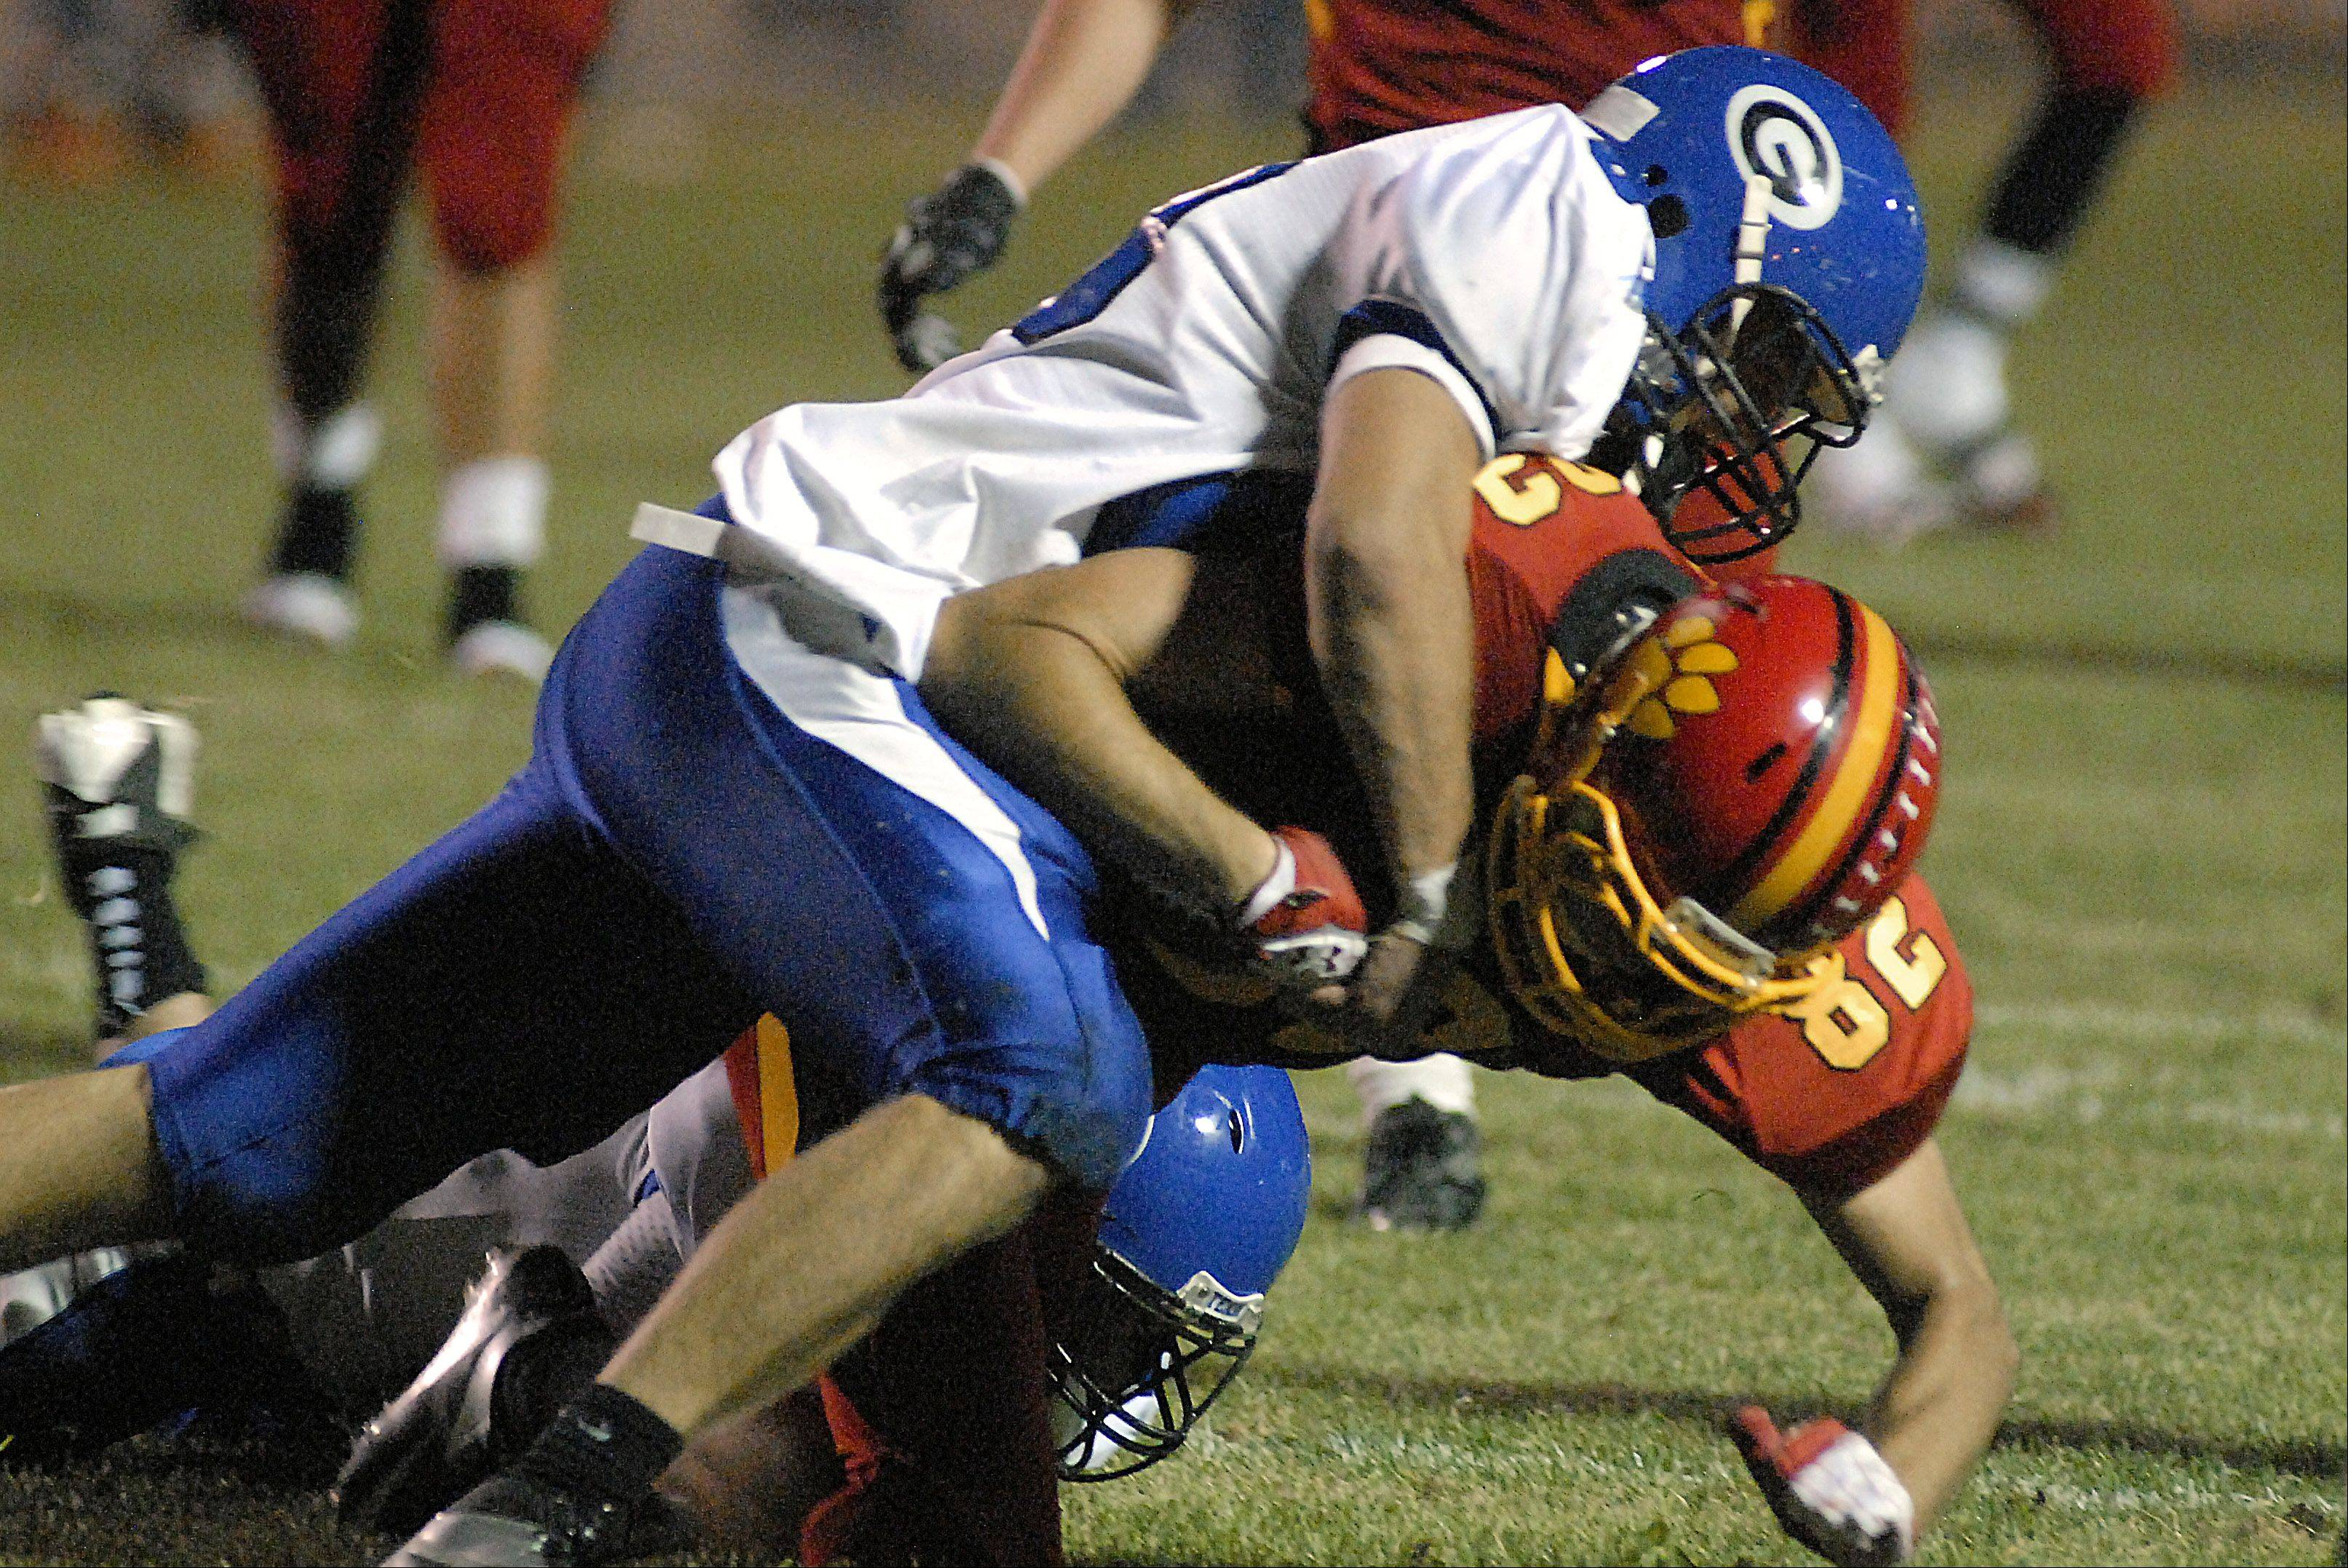 Laura Stoecker/lstoecker@dailyherald.com � Geneva's Billy Douds takes down Batavia's Zachary Strittmatter in the second quarter on Friday, September 7.